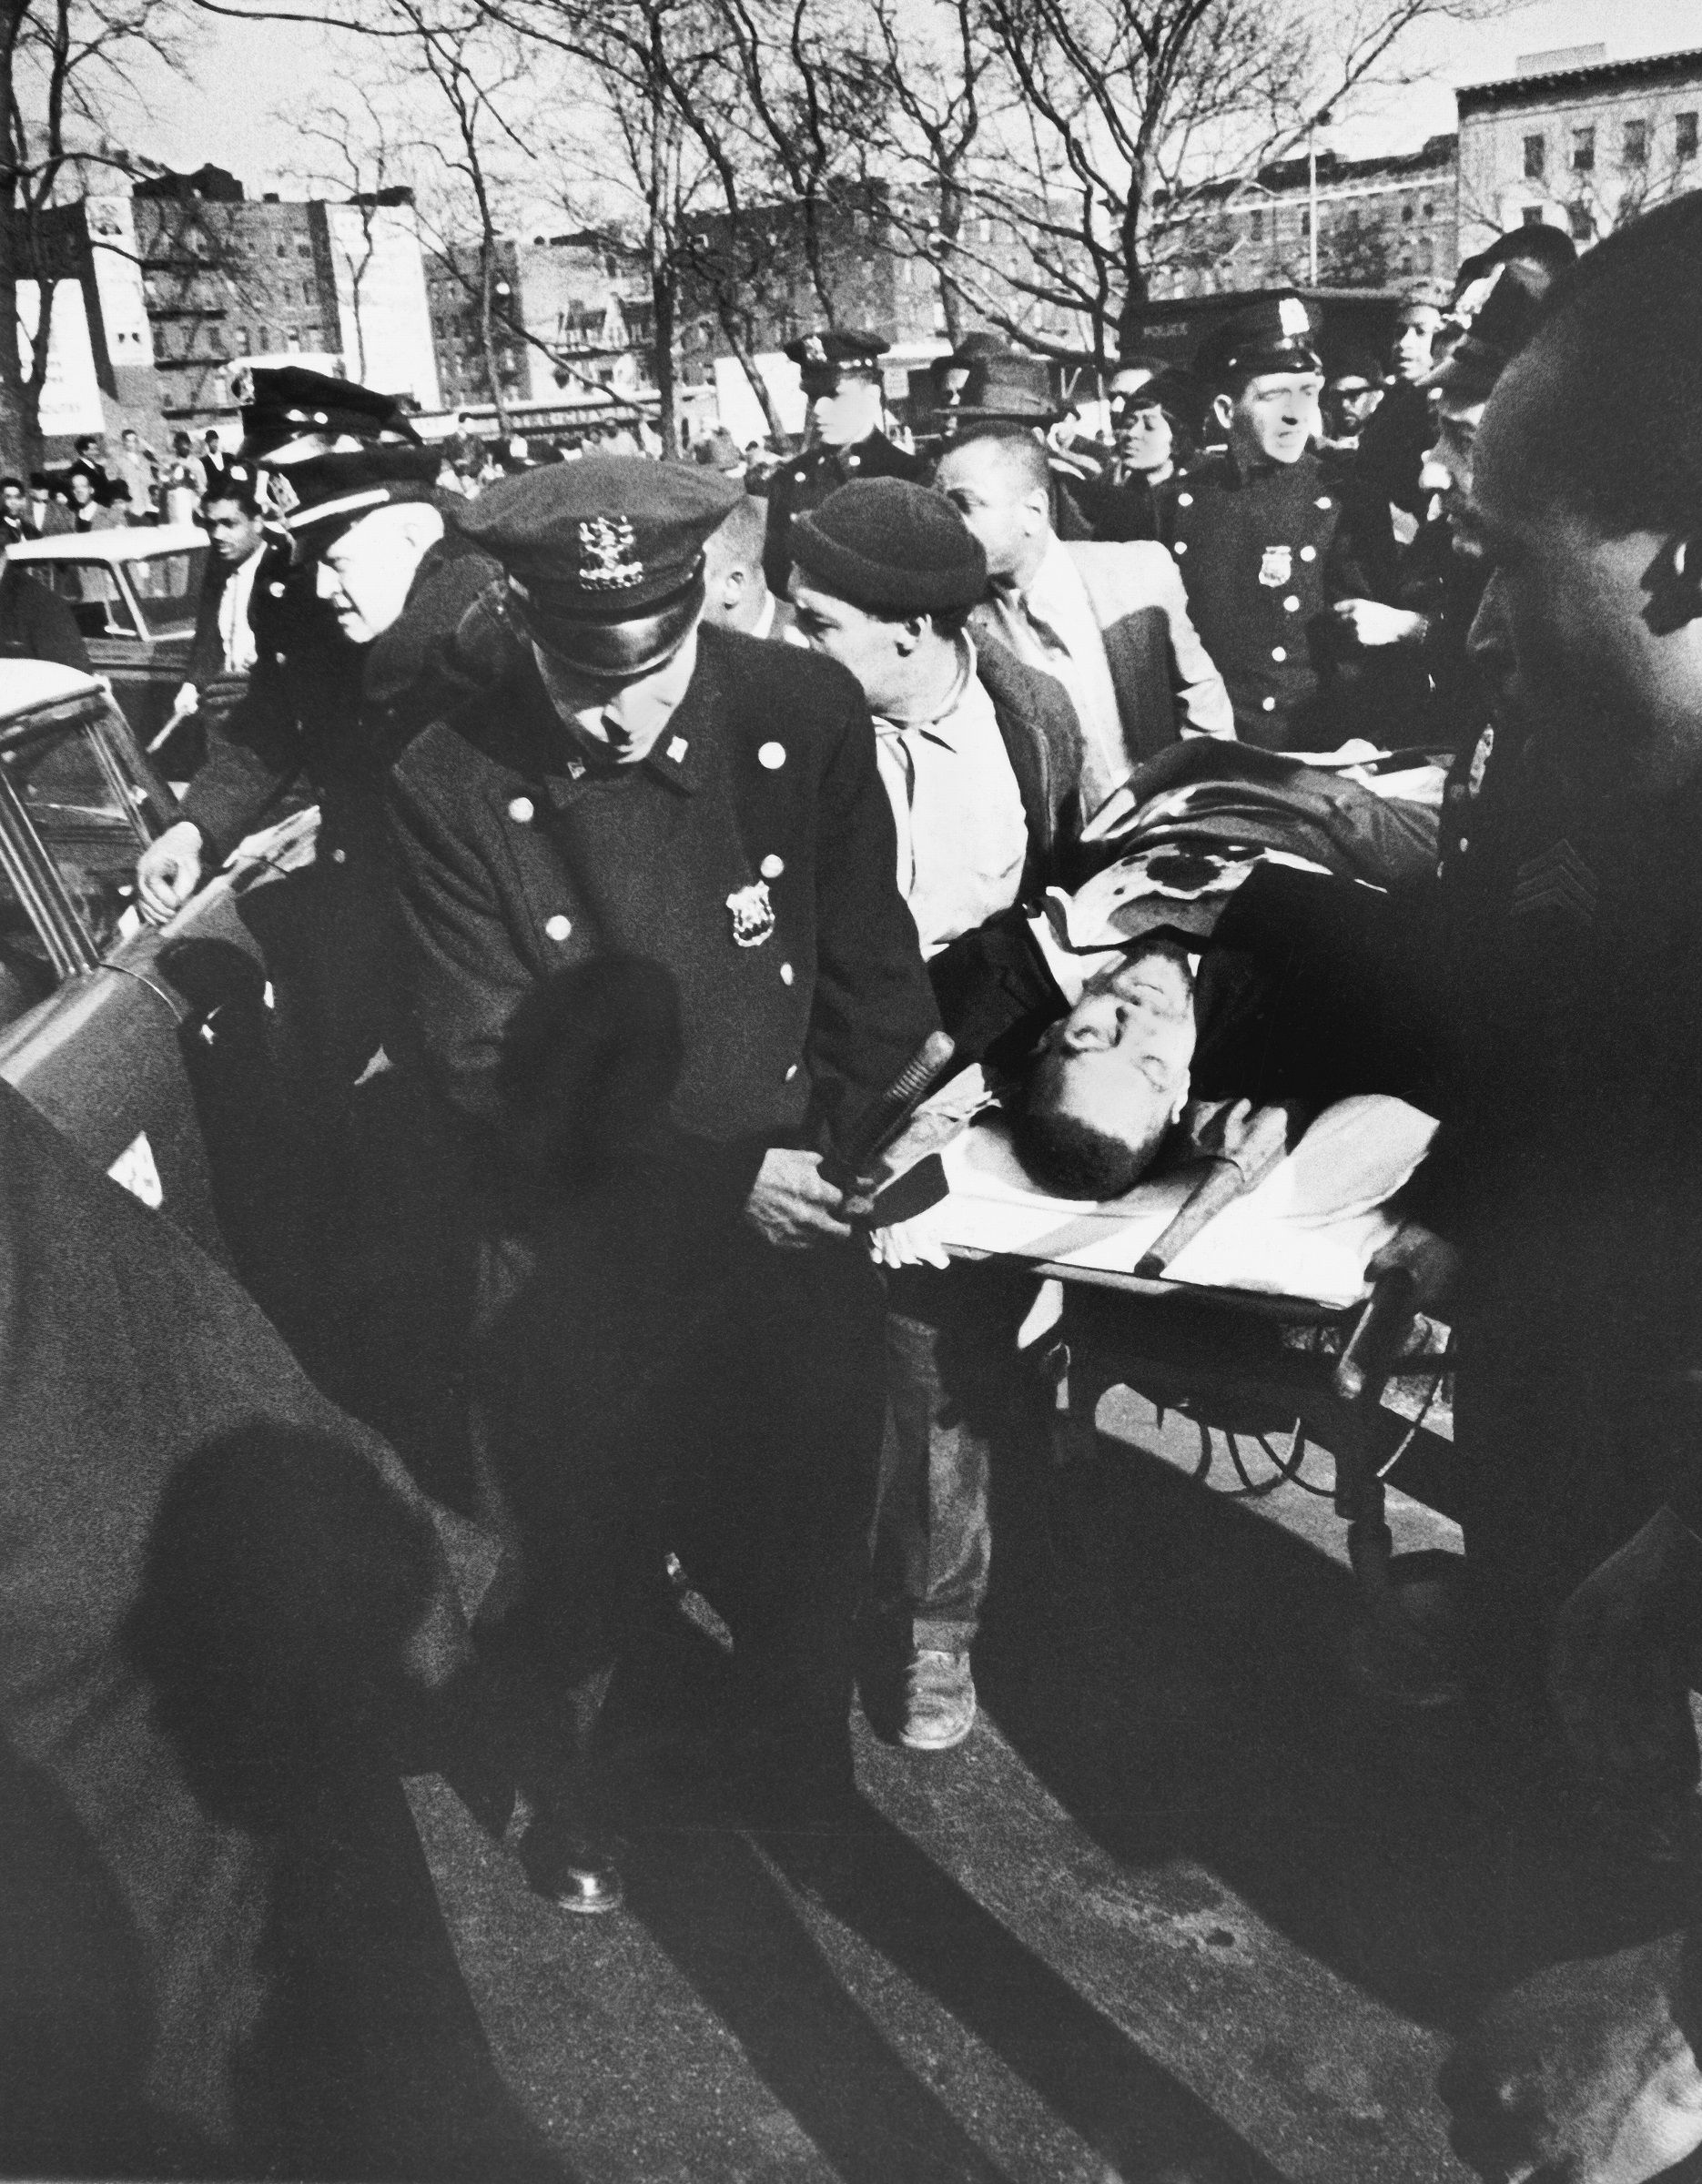 Malcolm x and martin luther king jr similarities malcolm xs body being carried on a stretcher after his assassination pooptronica